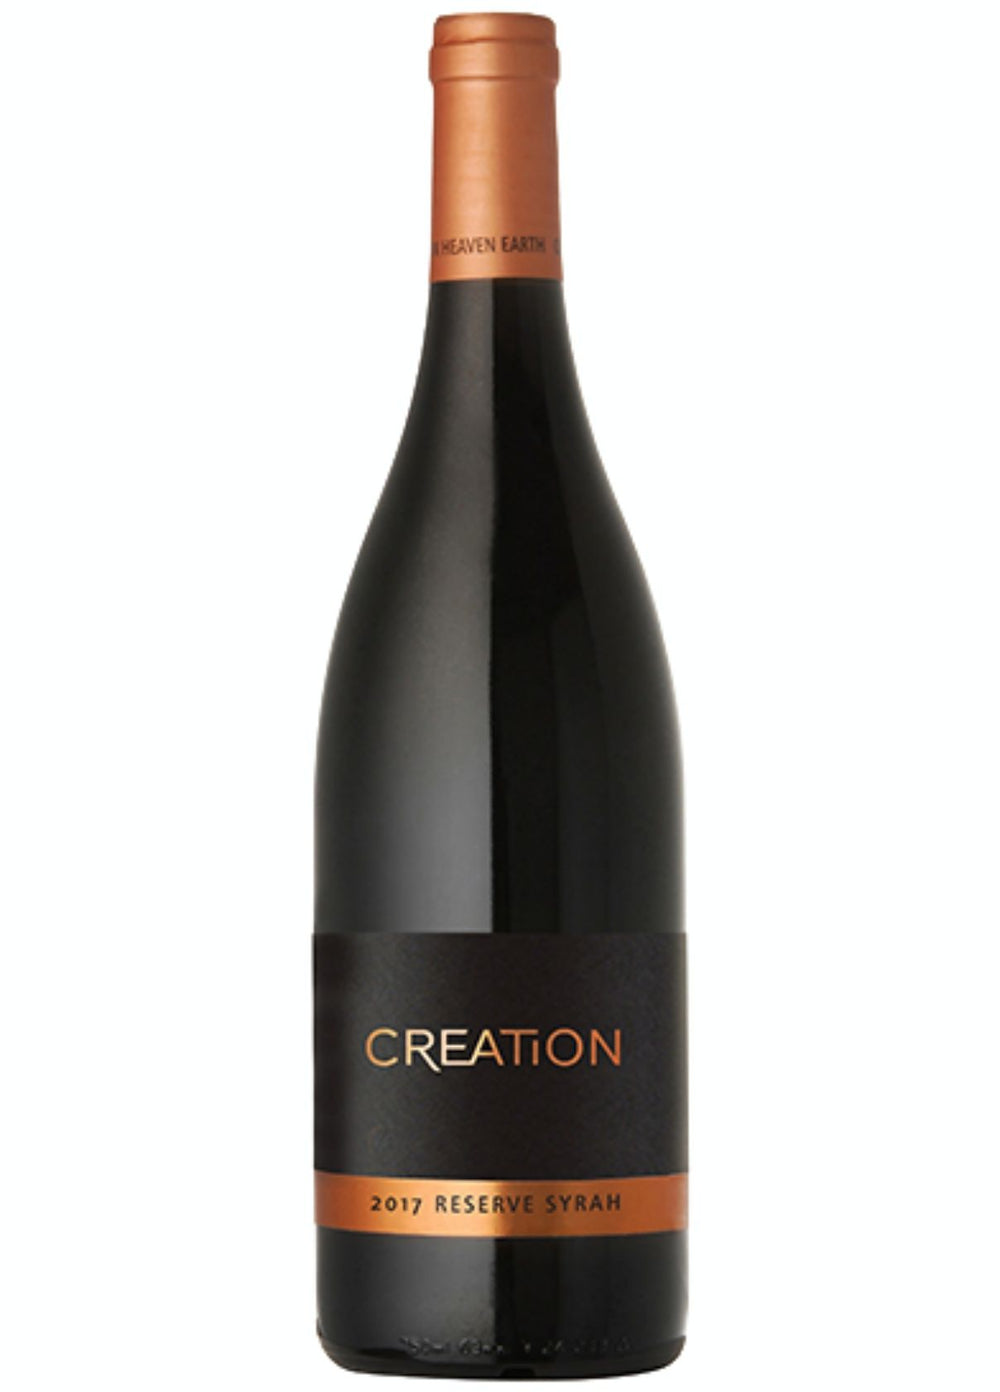 Creation - Reserve Syrah 2017